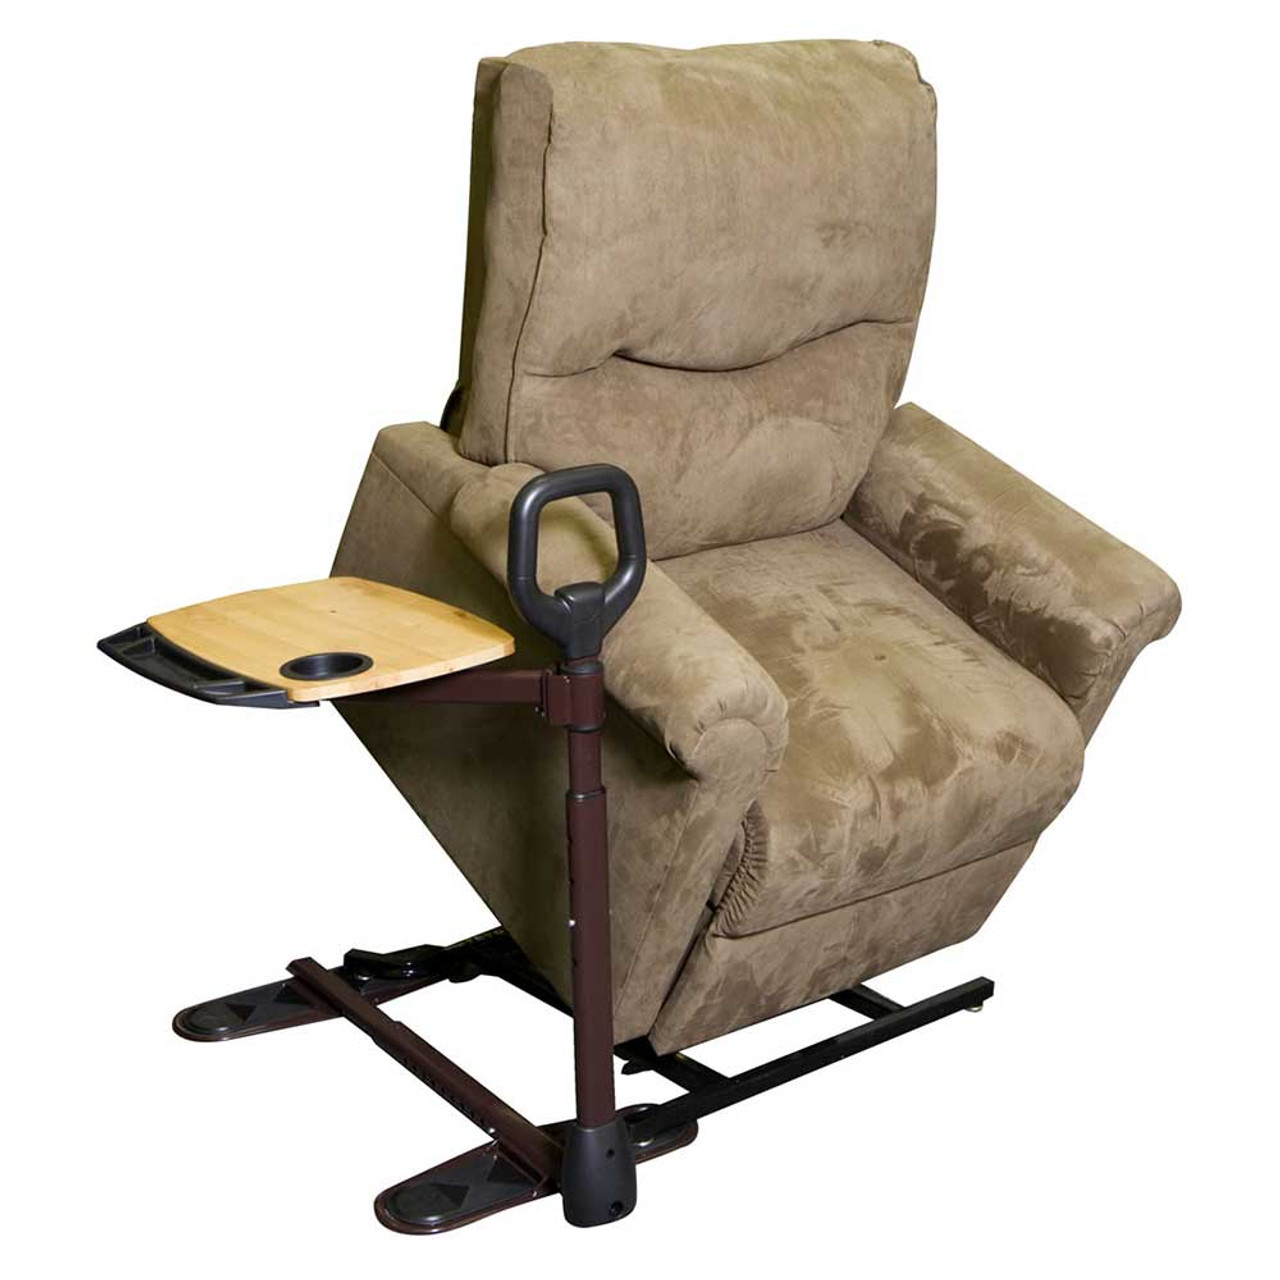 Couch Swivel Tray with Cane CSACT1 Recliner